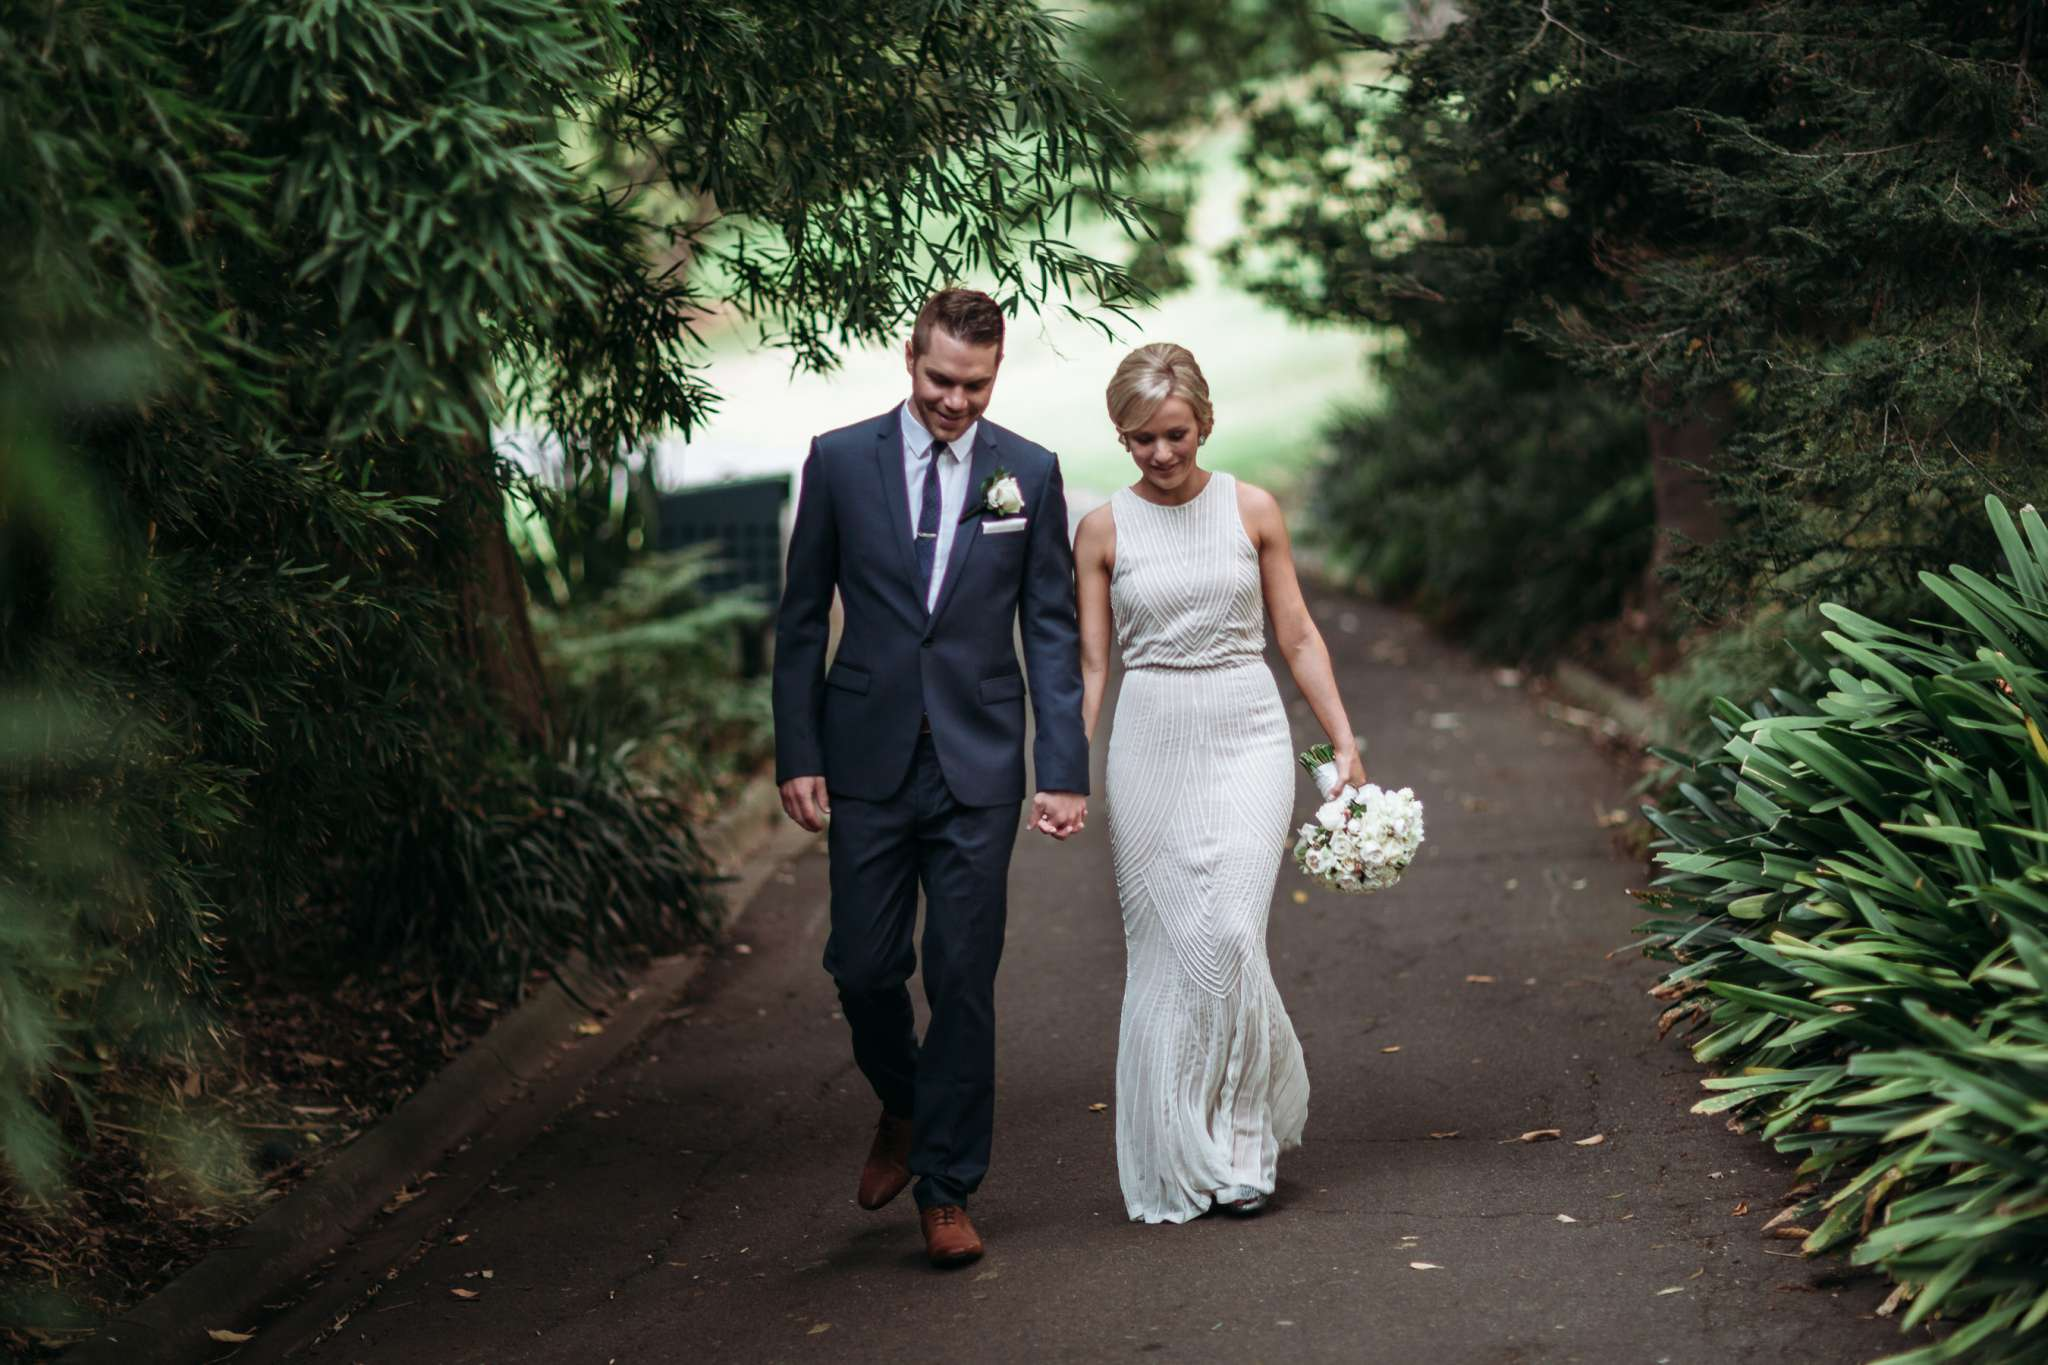 Wedding Photography Melbourne - Max & Megan 275